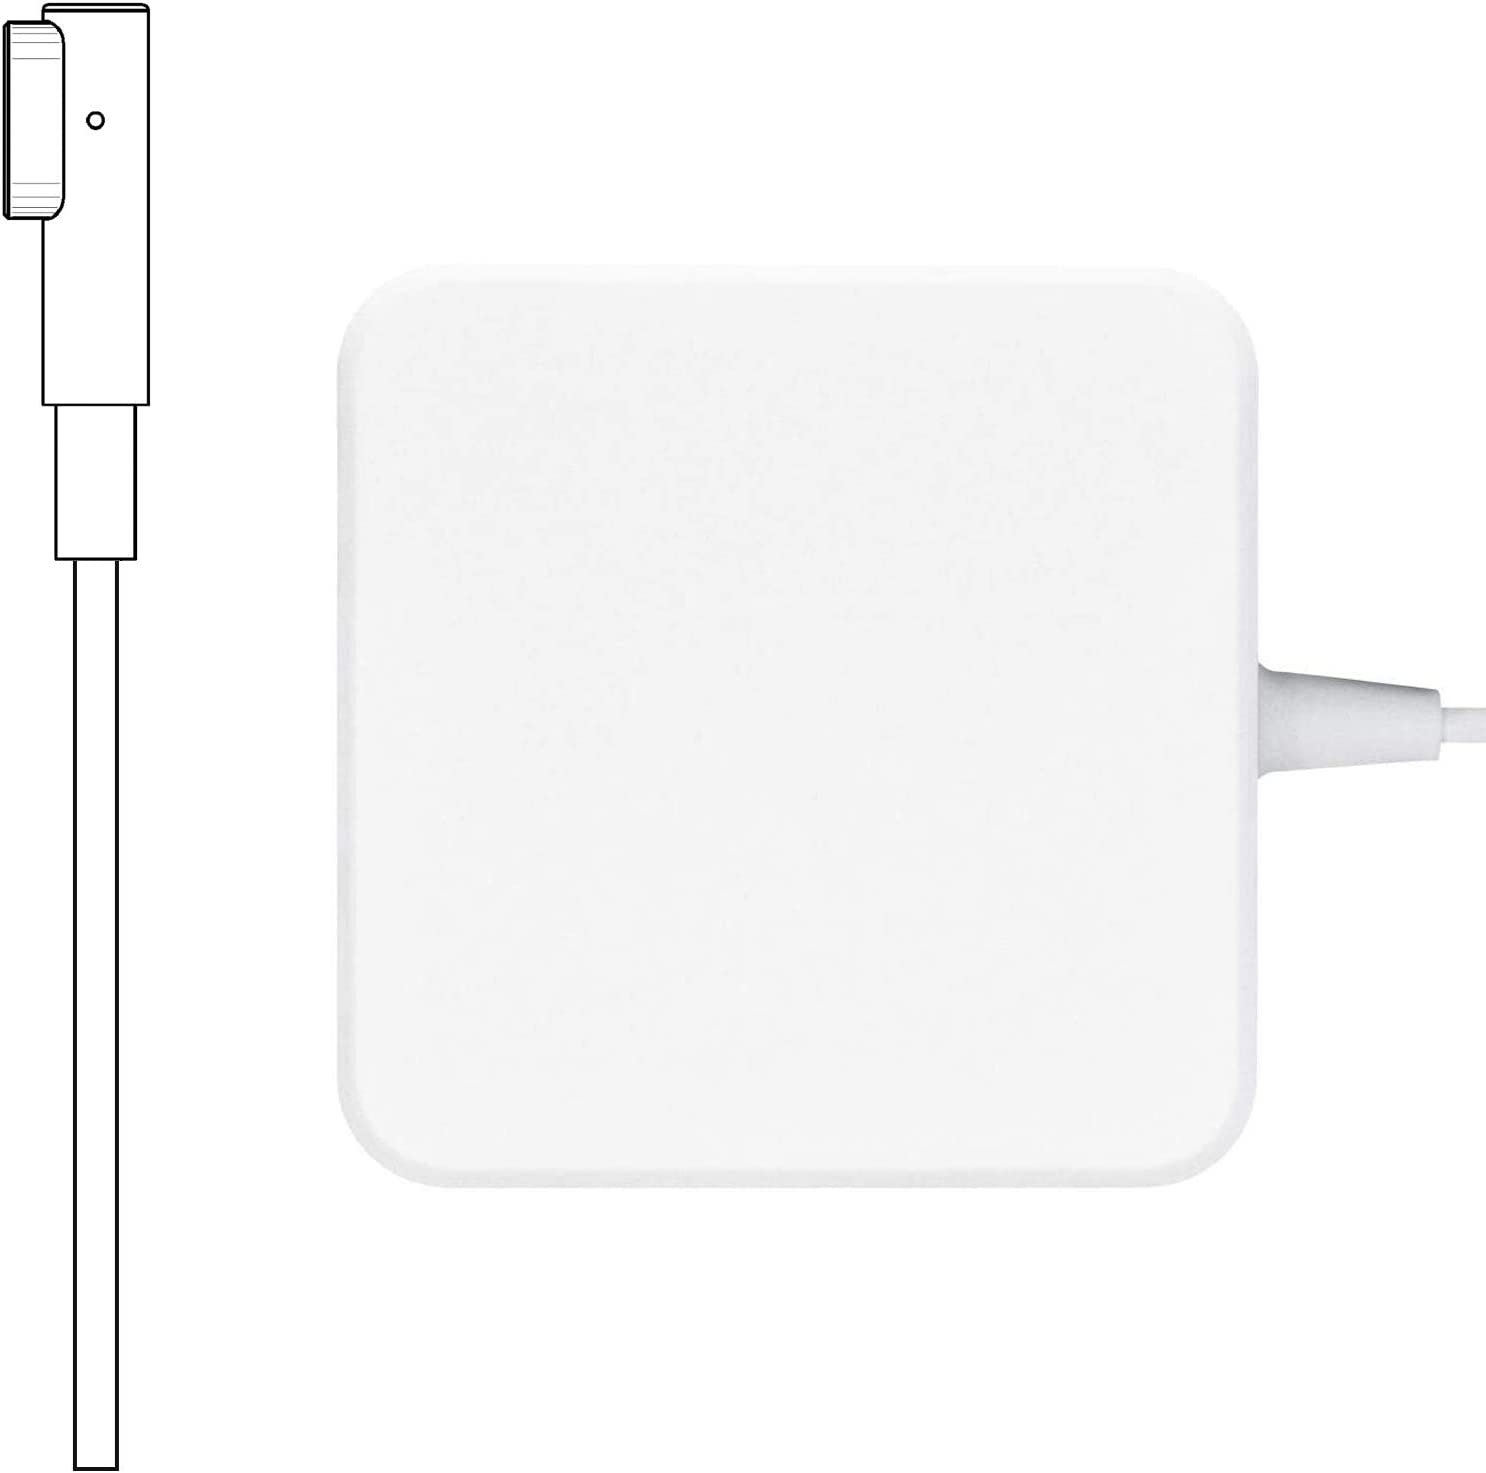 Mac Book Pro Charger, 60W Magsafe Power Adapter Magnetic L-Tip Connector Charger for Mac Book and 13-inch Mac Book Pro(Before Mid 2012 Models) (White)